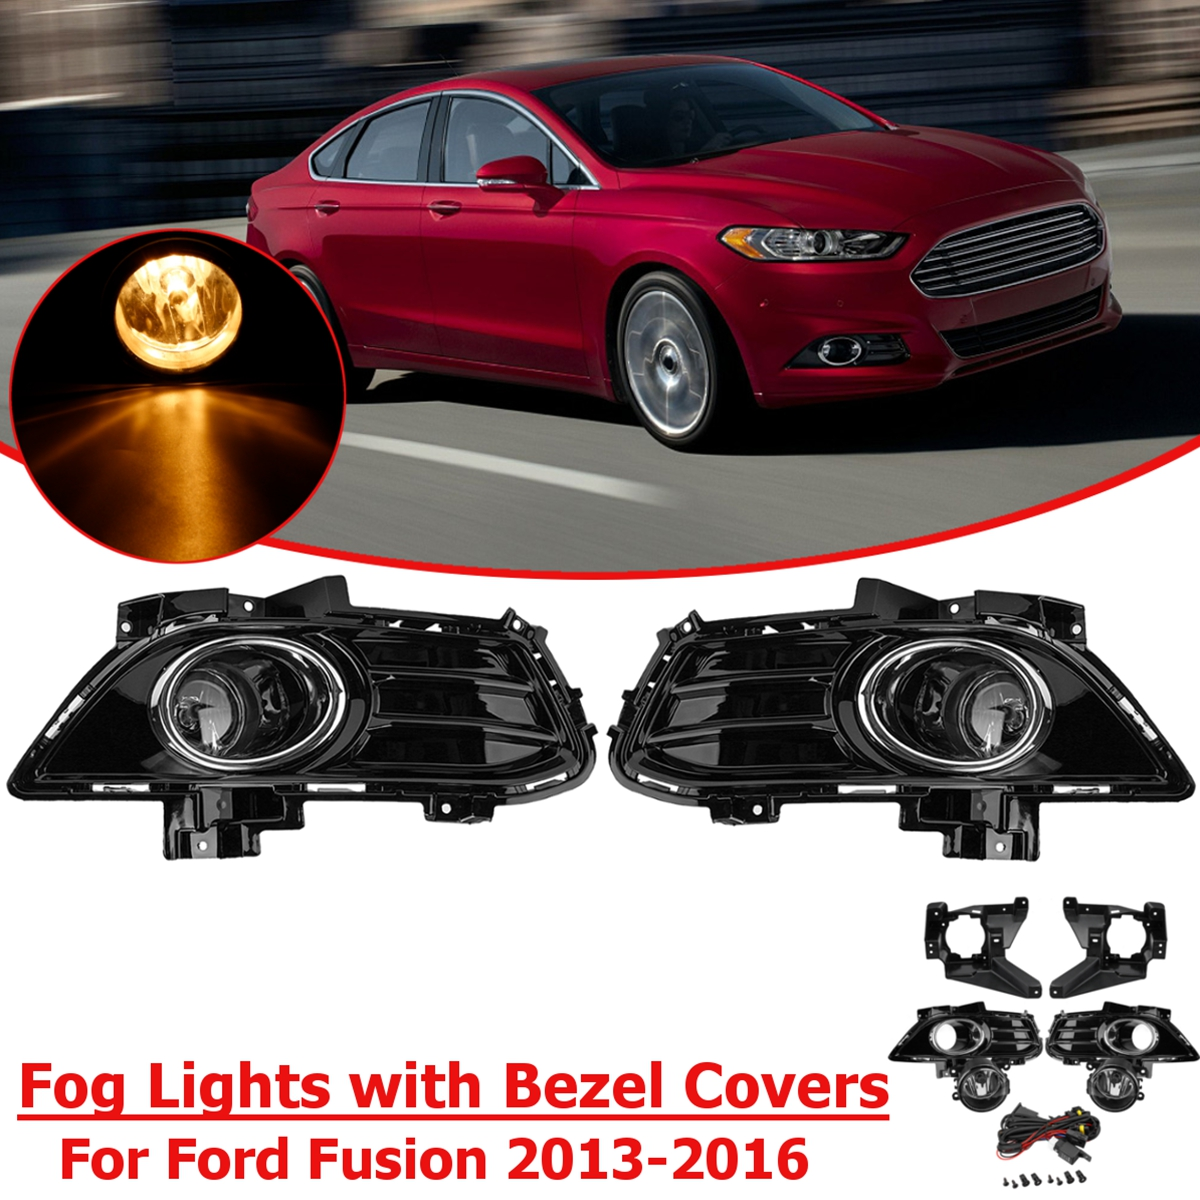 Front Fog Lights Fog lamp Kit with Bezel Covers and Wiring Complete Set For Ford for Fusion for Mondeo 2013 2014 2015 2016 free shipping fog light set fog lights lamp for toyota vios 2013 on clear lens pair set wiring kit